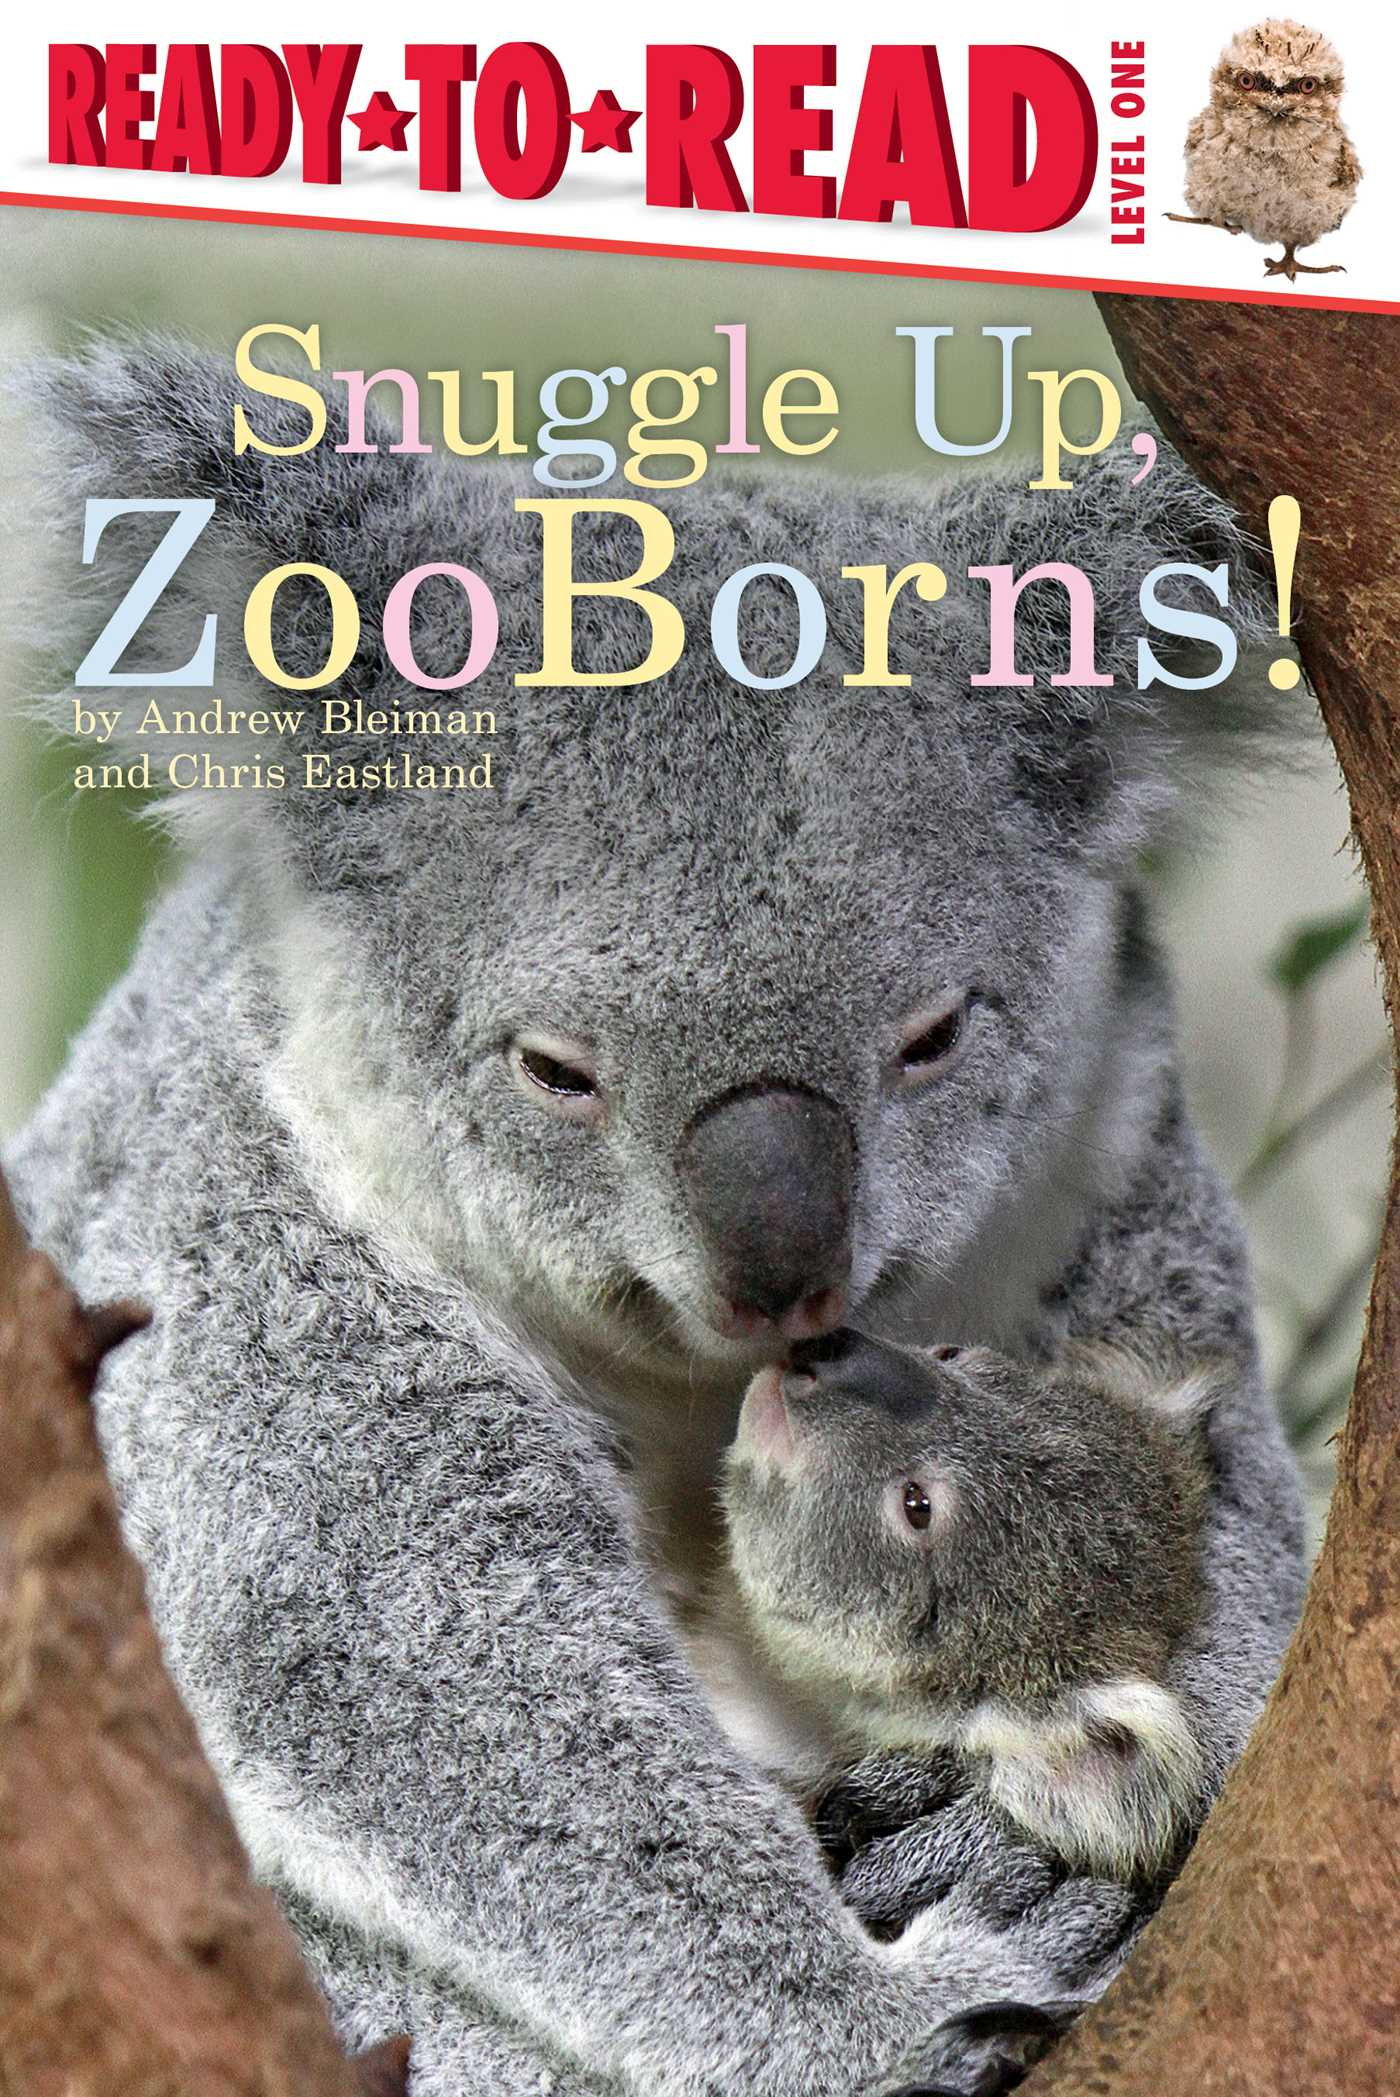 Snuggle up zooborns 9781481431002 hr